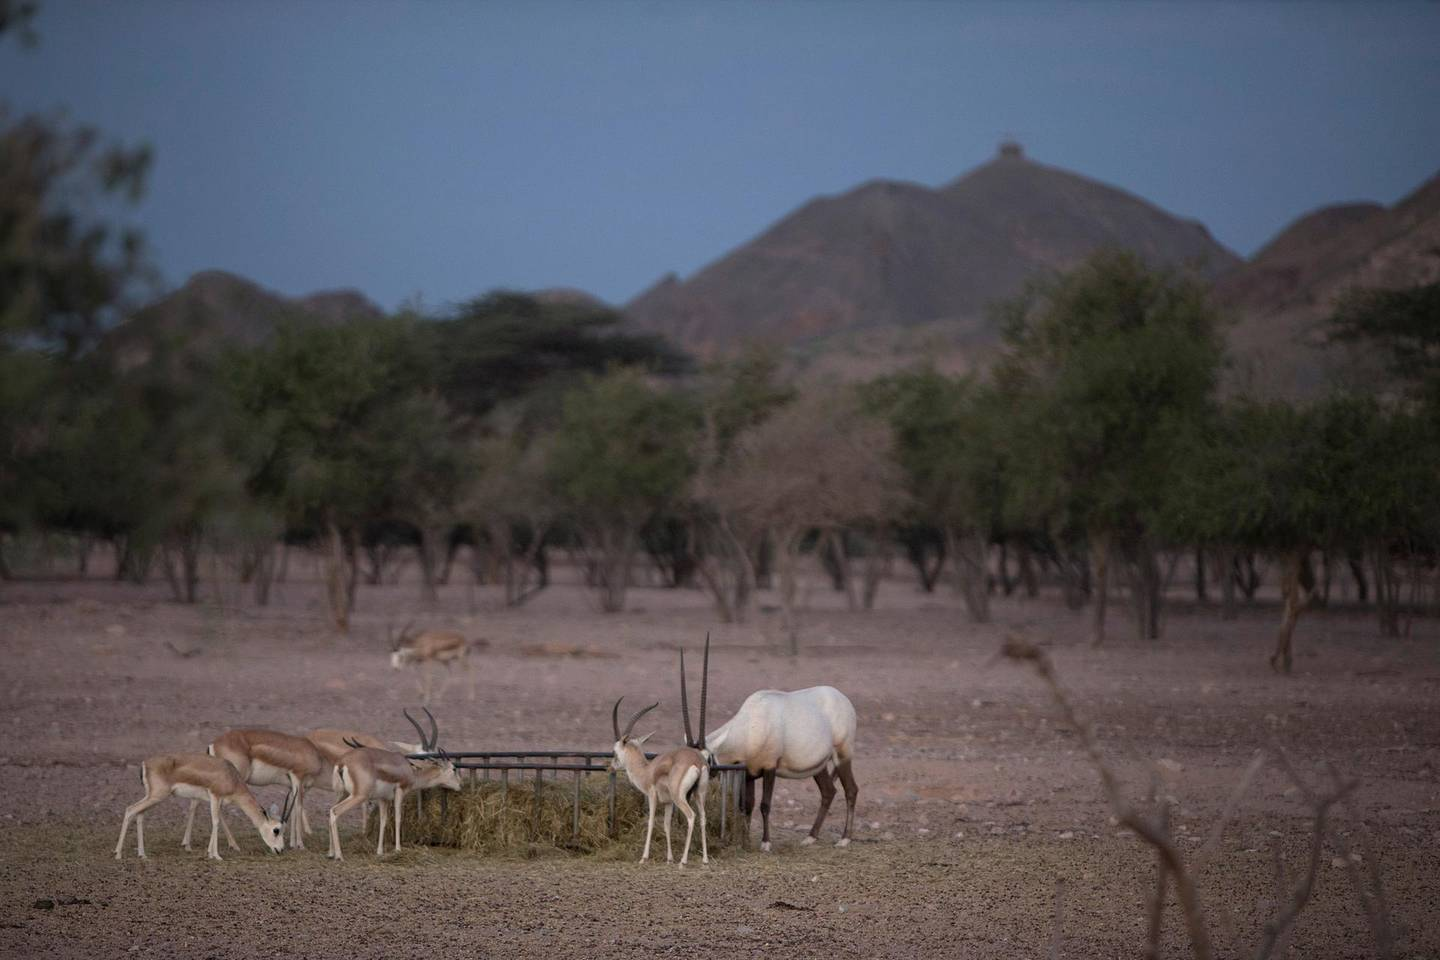 SIR BANI YAS ISLAND, ABU DHABI, United Arab Emirates, Nov. 26 , 2014:   Sand Gazelles and an Arabian Oryx, a critically endangered species, are seen during a dawn nature and wildlife drive on Wednesday morning, Nov. 26, 2014, which is one of the many activities offered to visitors on the Sir Bani Yas Island. The tourism destination, developed and managed by the Tourism and Development Investment Company (TDIC) is located off the coast of Al Gharbia, or the Western Region, and about 250-kilometer drive from Abu Dhabi. As the resort celebrates 6 years this November, it's developers are adding adventure to its focus, while preserving the founder's vision of nature conservancy. The island, one of the largest natural island in the UAE and a wildlife reserve founded by the late Sheikh Zayed bin Sultan al Nahyan in 1971 to preserve Arabia's endangered species, is now home to 25 free-roaming mammals, 177 kinds of birds, about 100 different species of insect, and over 100 small plants.   (Silvia Razgova / The National)  Usage: undated Section: all Reporter: Silvia Razgova